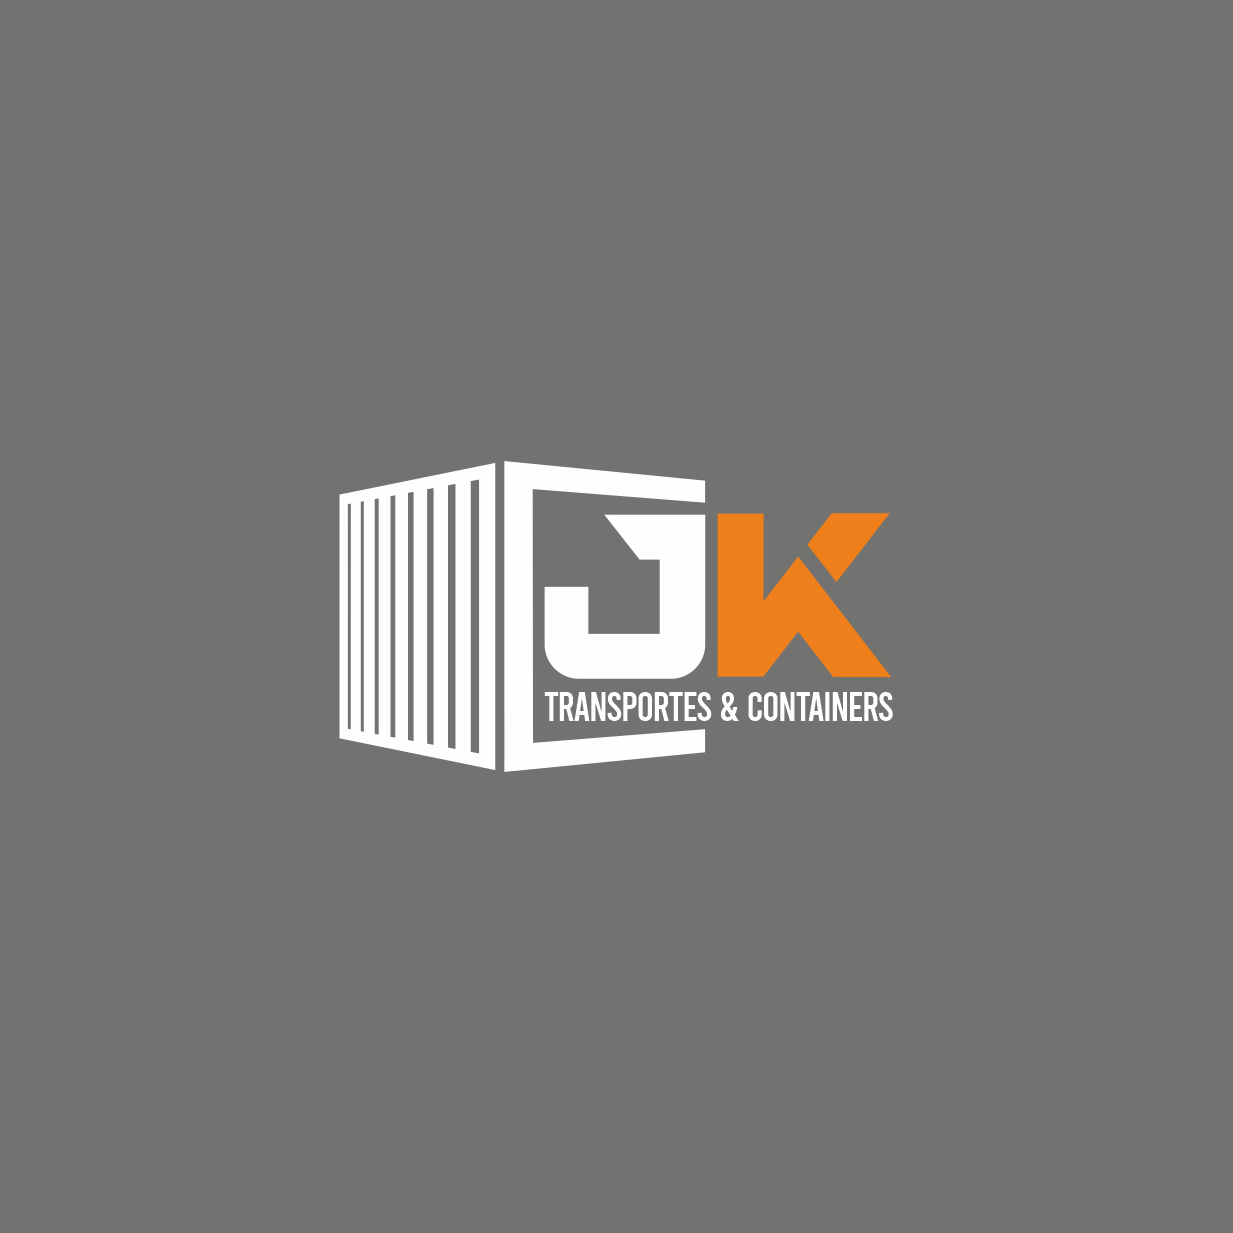 JK  Transportes & Containers